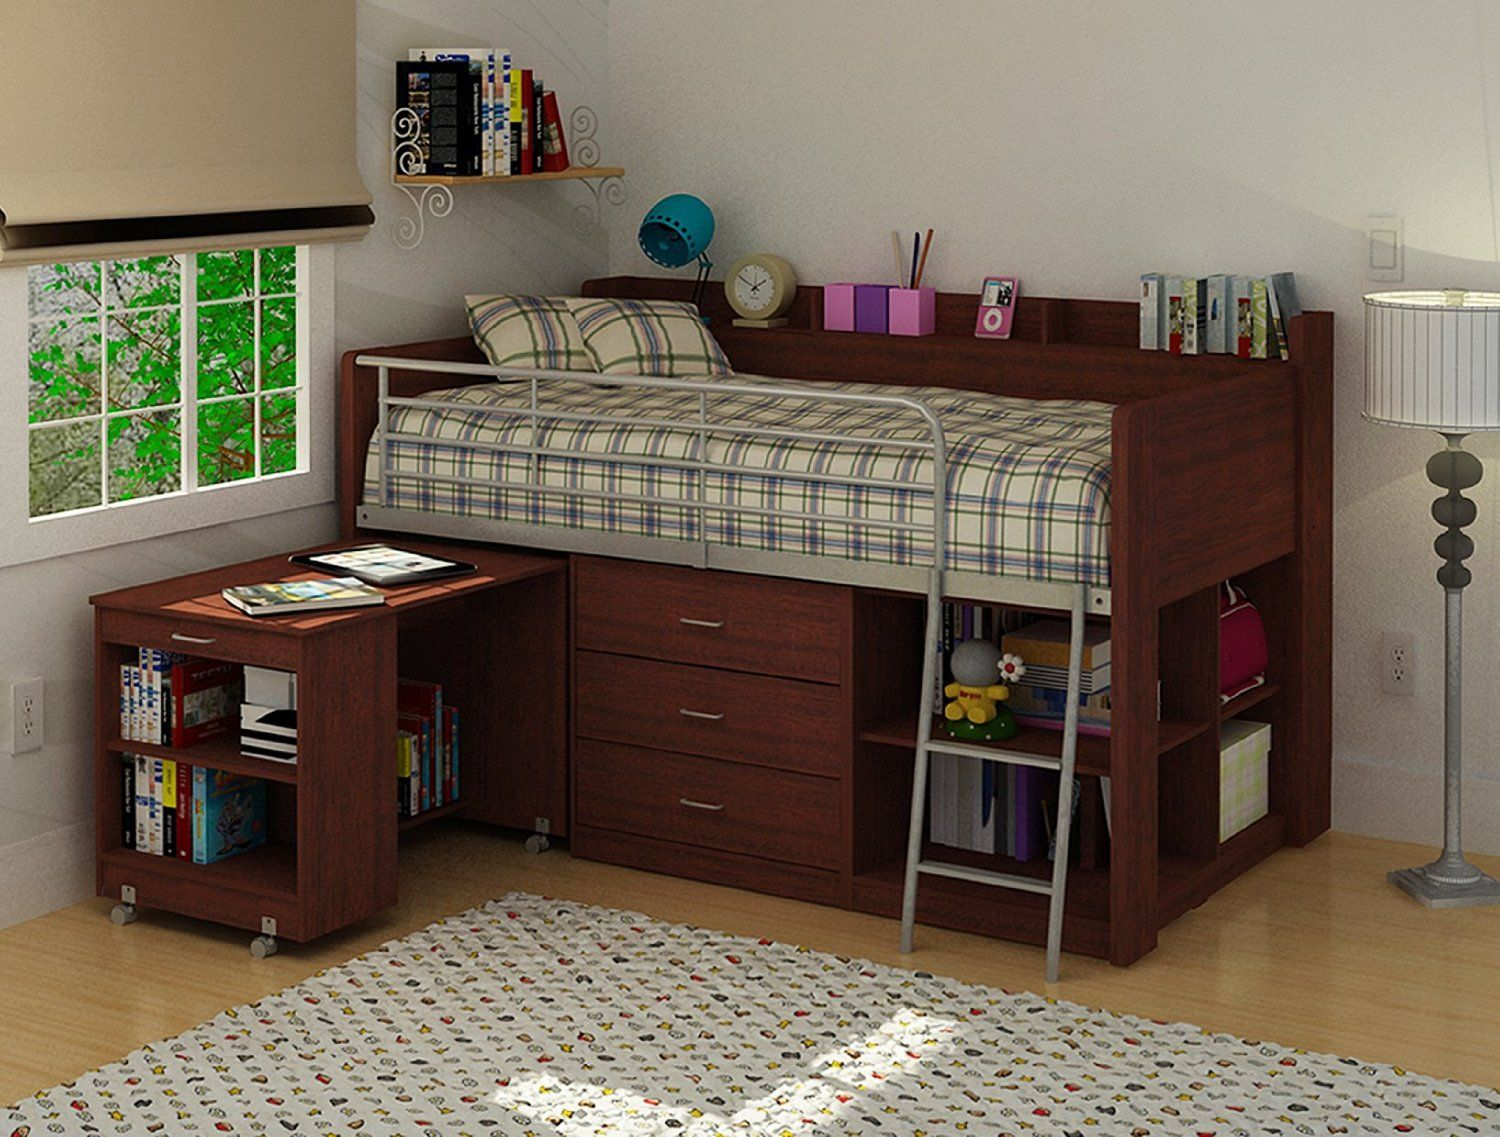 Kids bunk beds with desks valuable 17 kids loft beds with Kids loft bed with desk